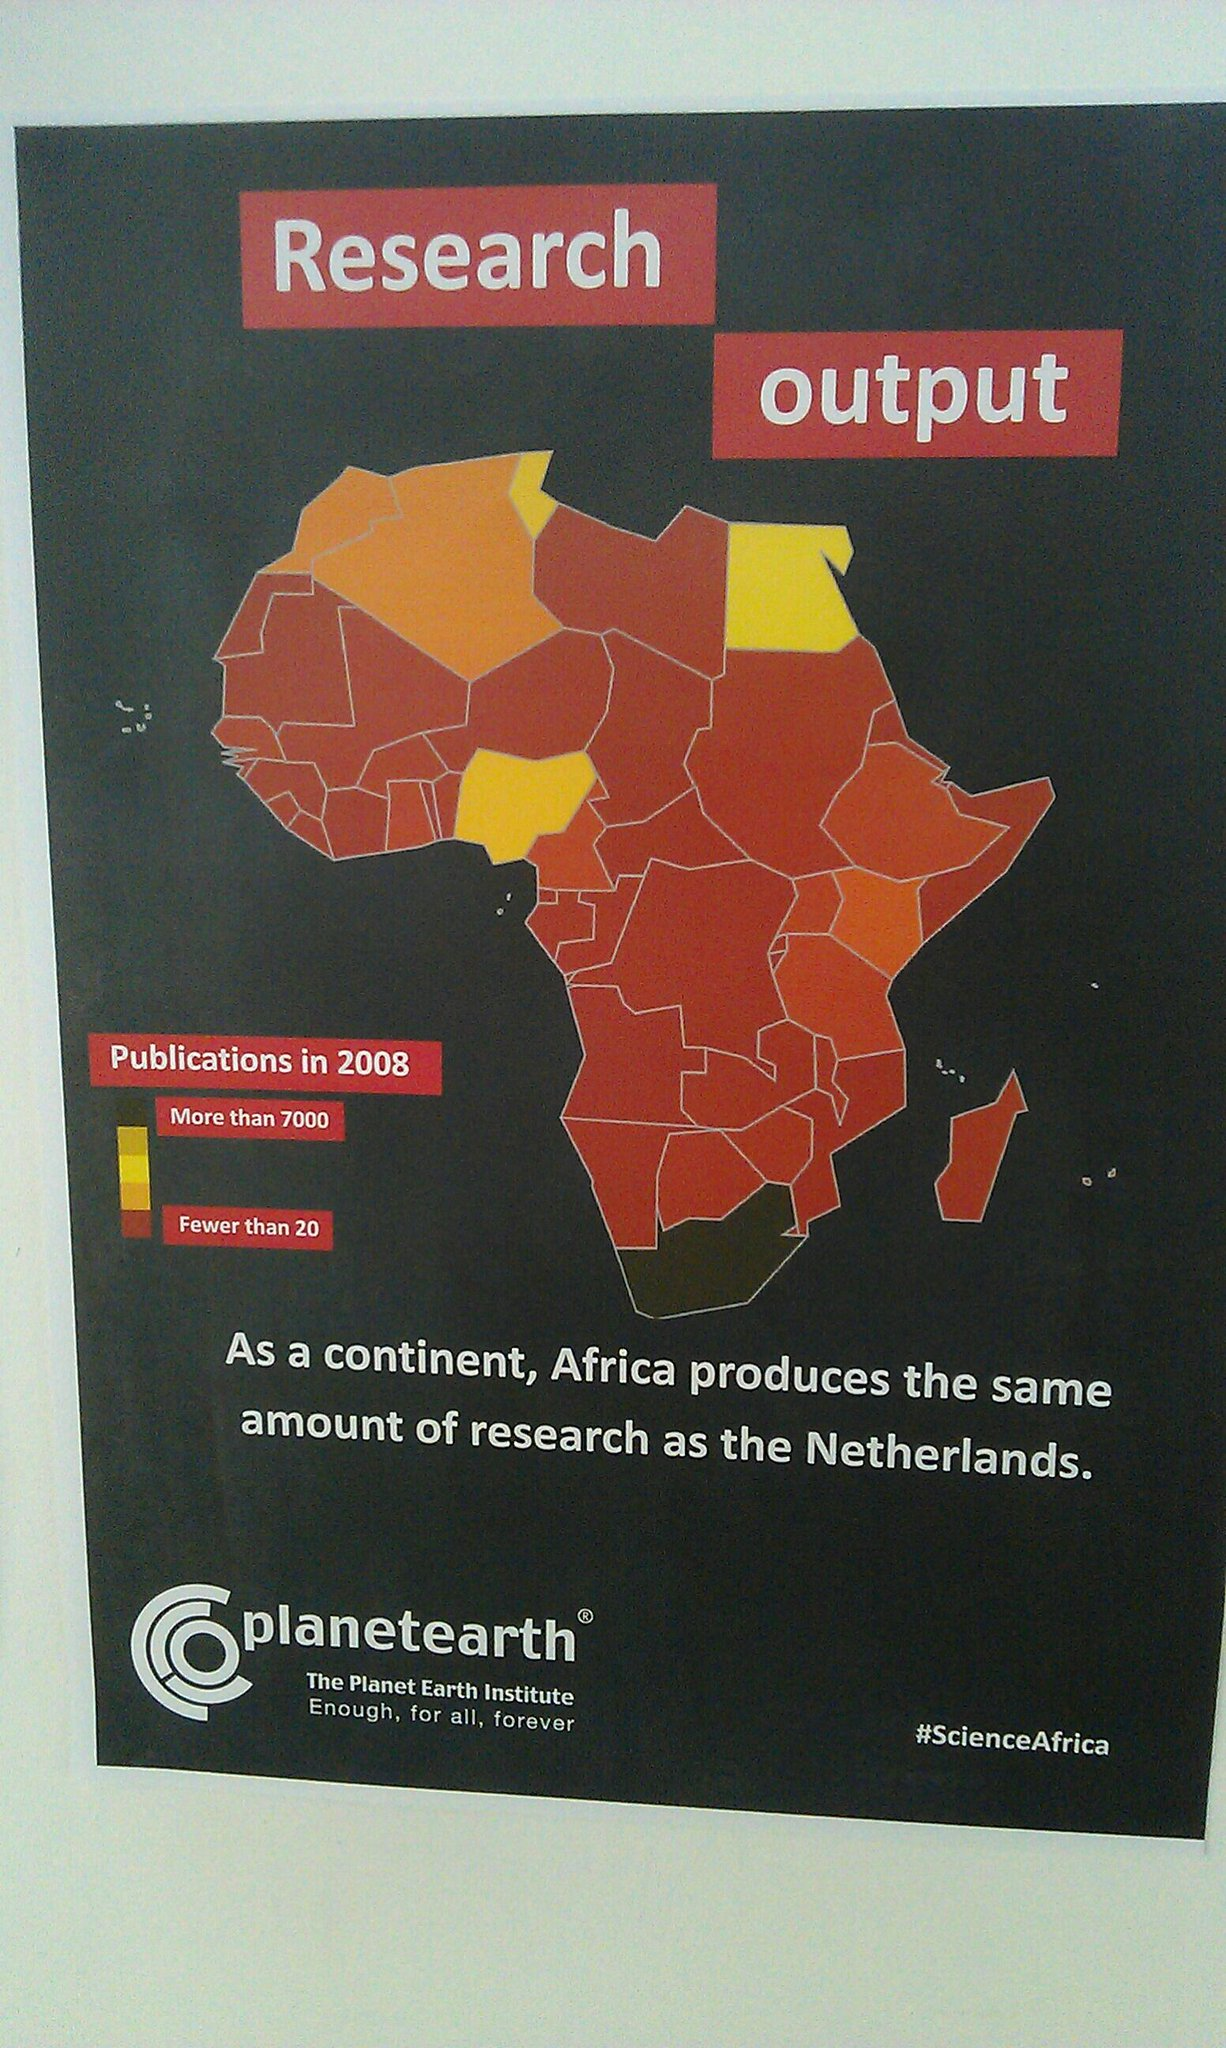 Africa's research output